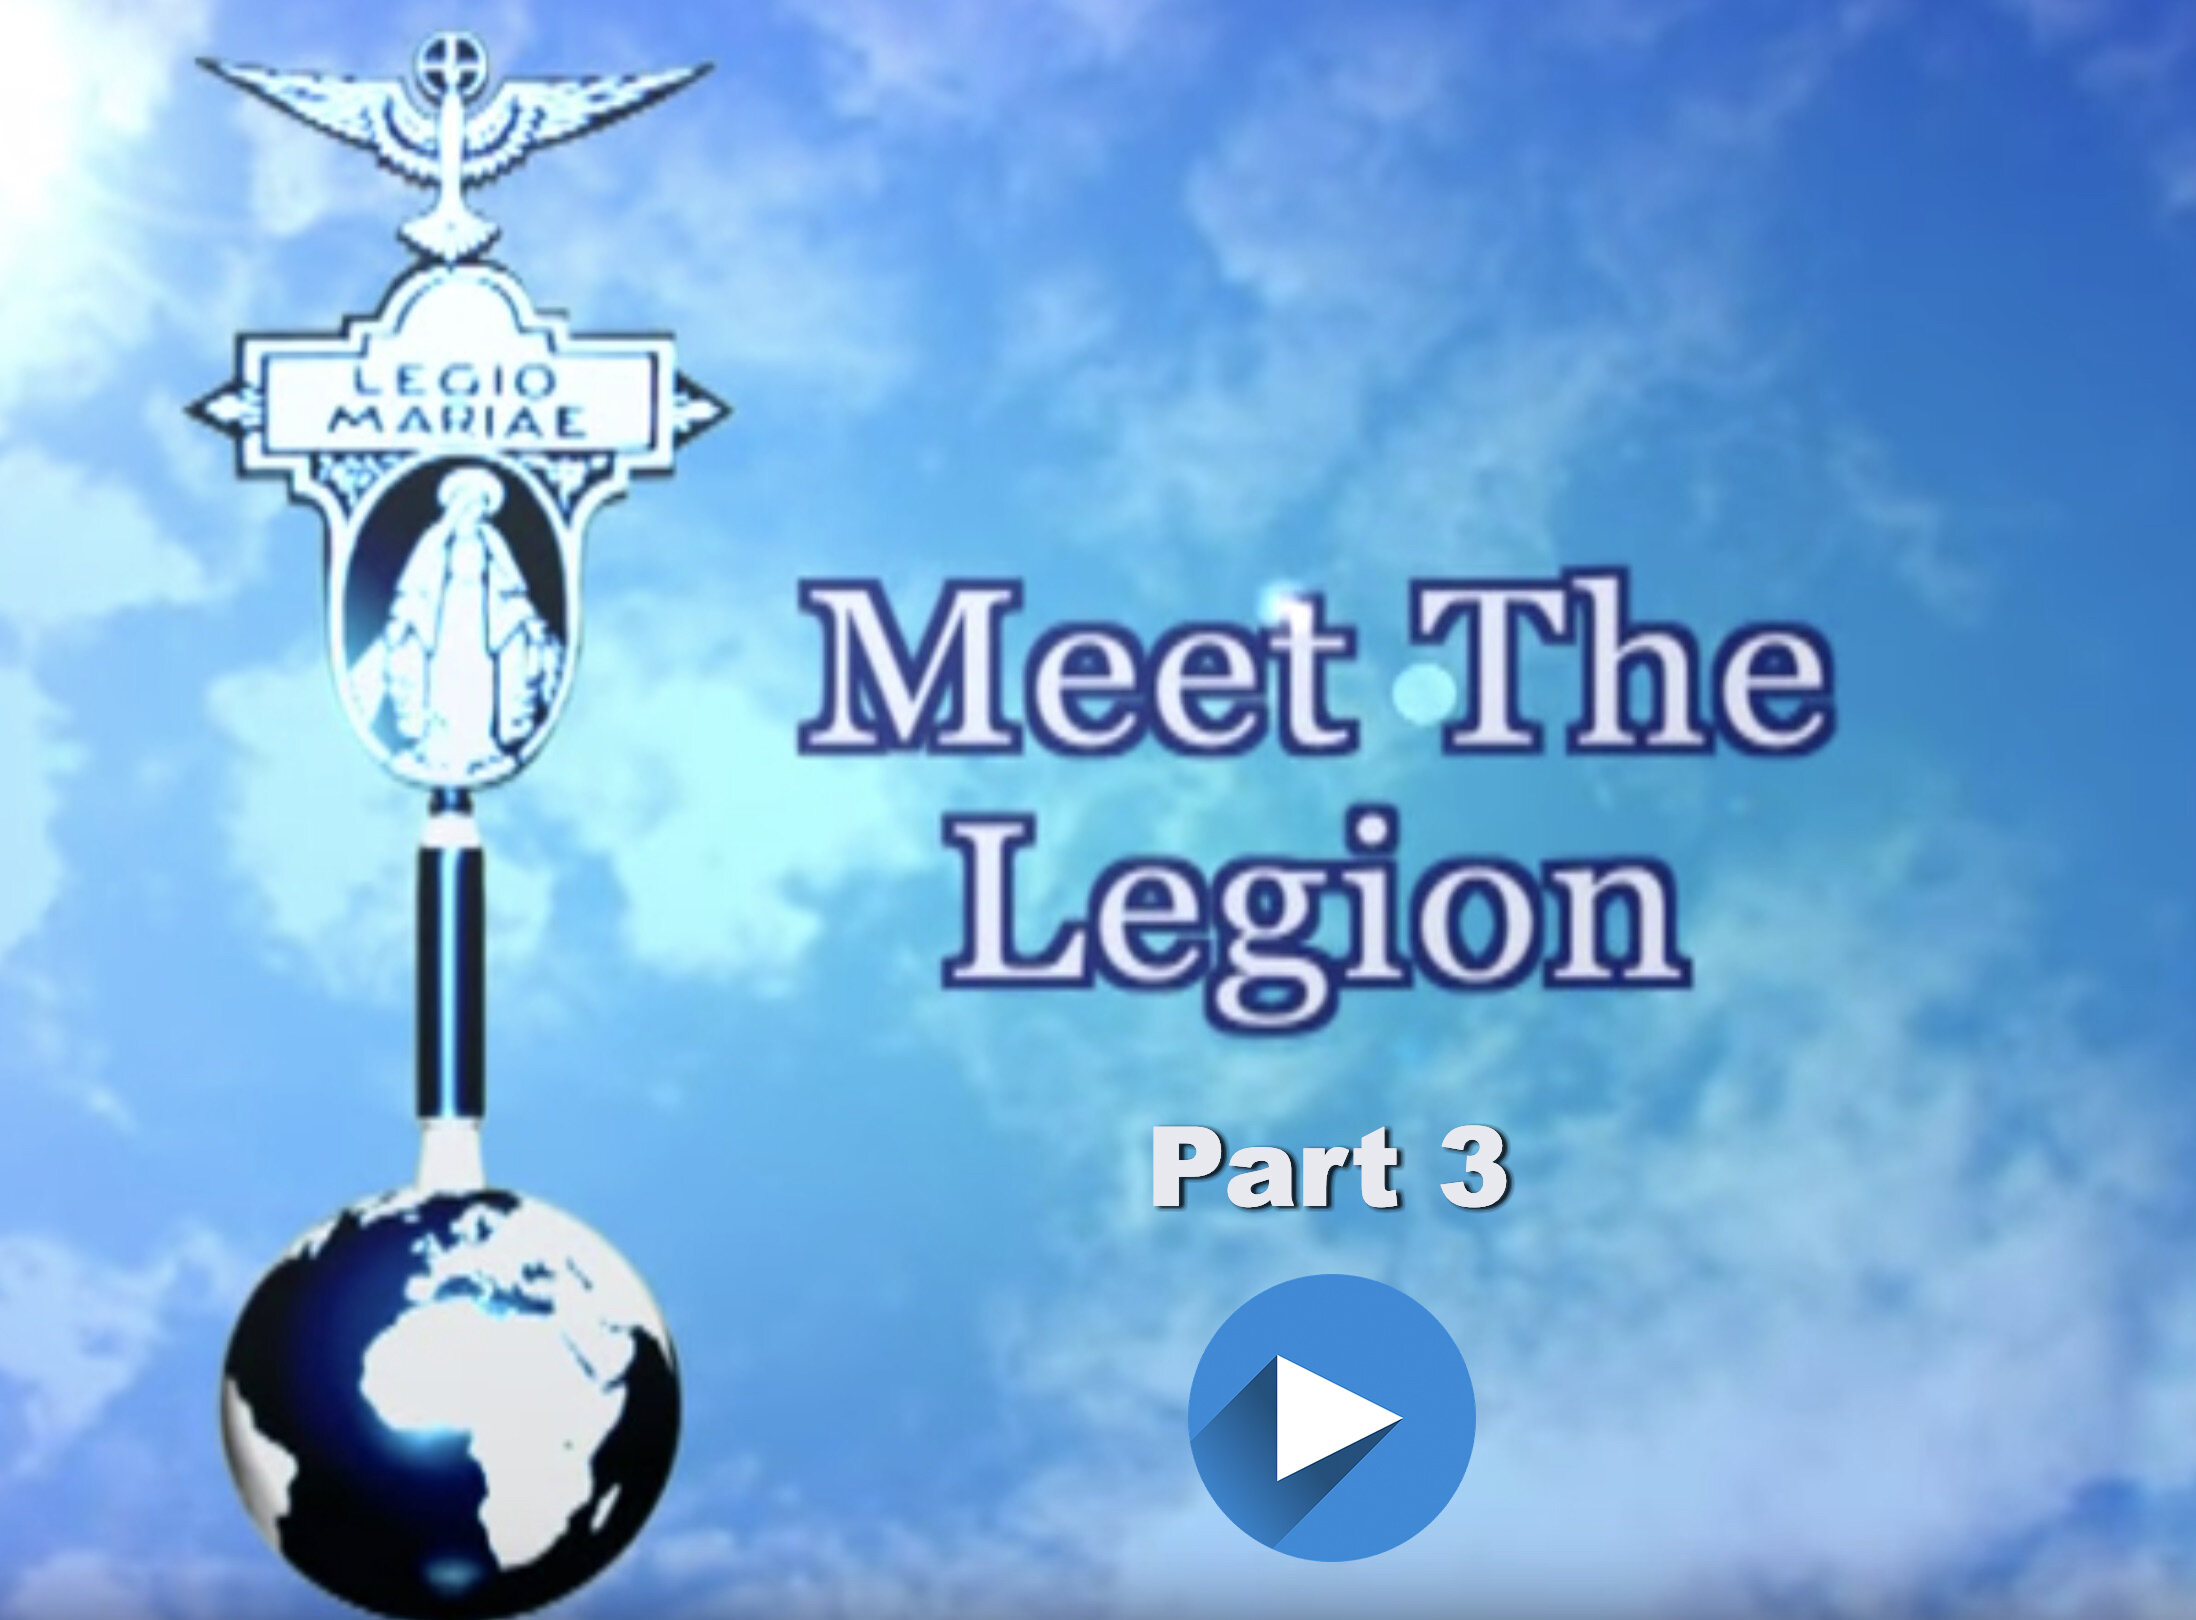 LEGION OF MARY VIDEO COVER with arrow PART 3.jpg